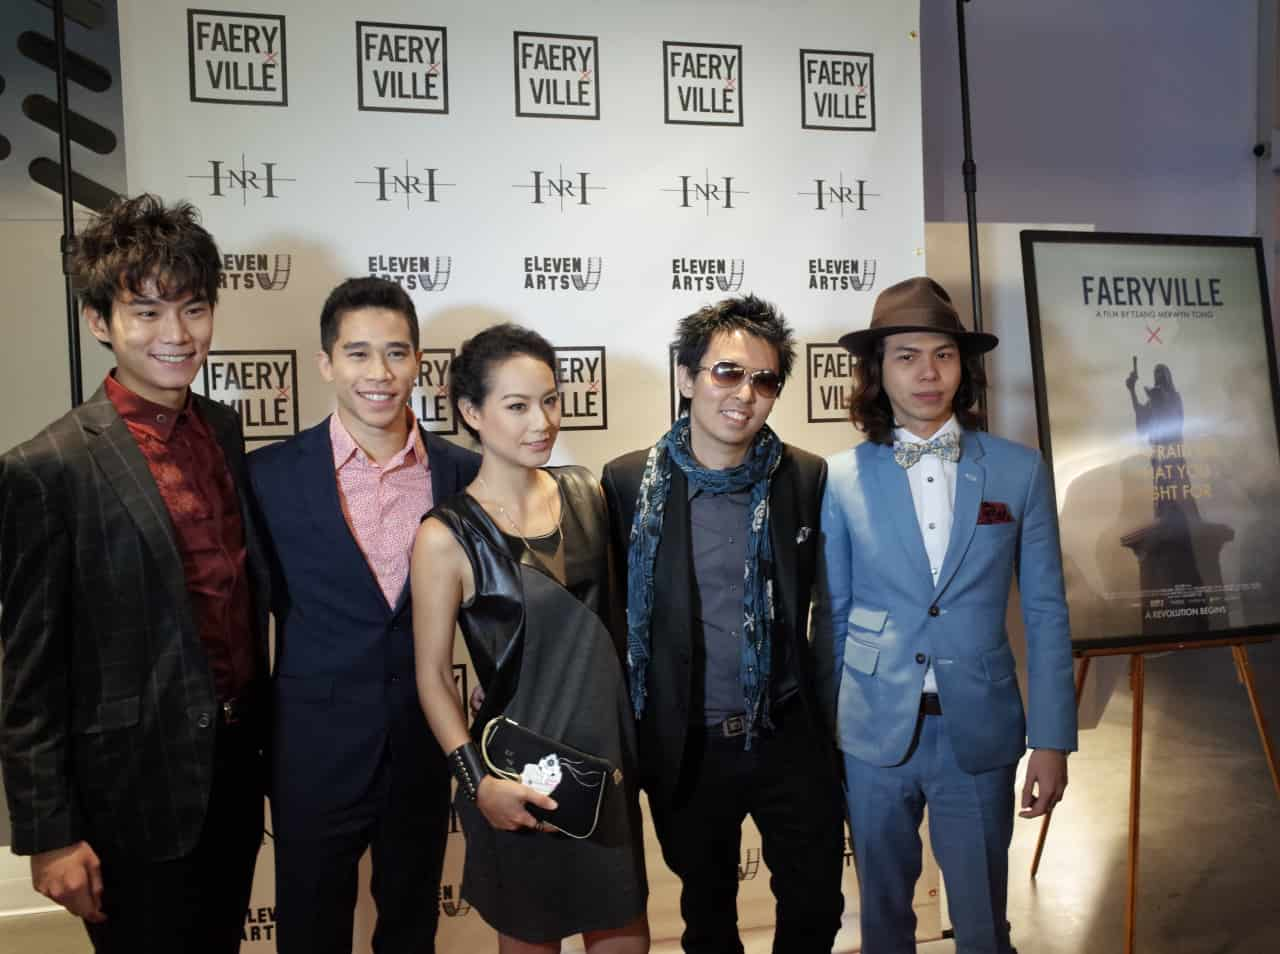 Singapore film 'Faeryville' premieres in Hollywood to rousing reception